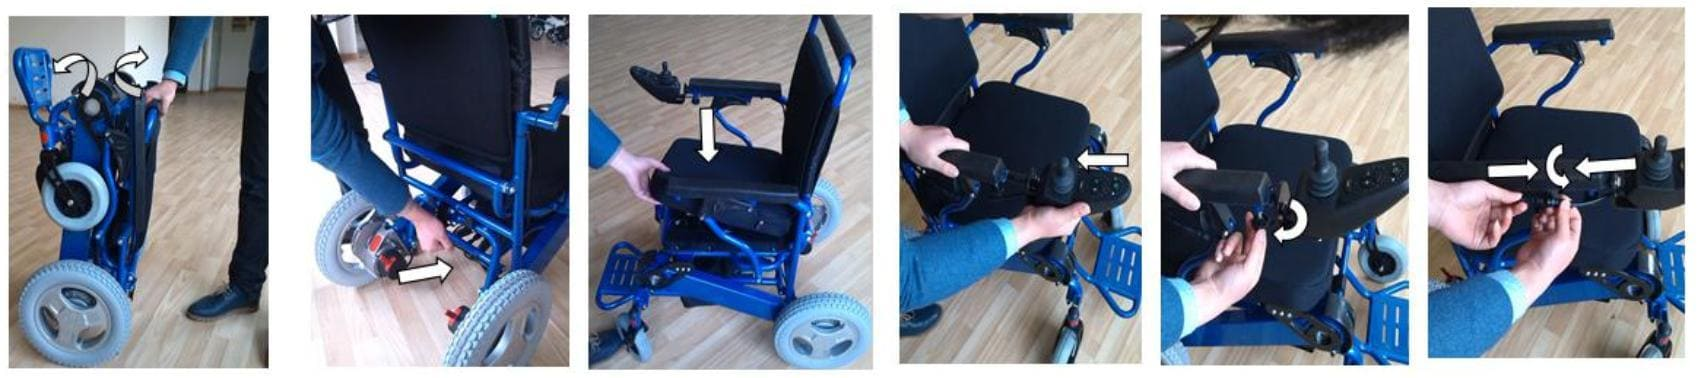 Powered Wheel Chair unfolding steps